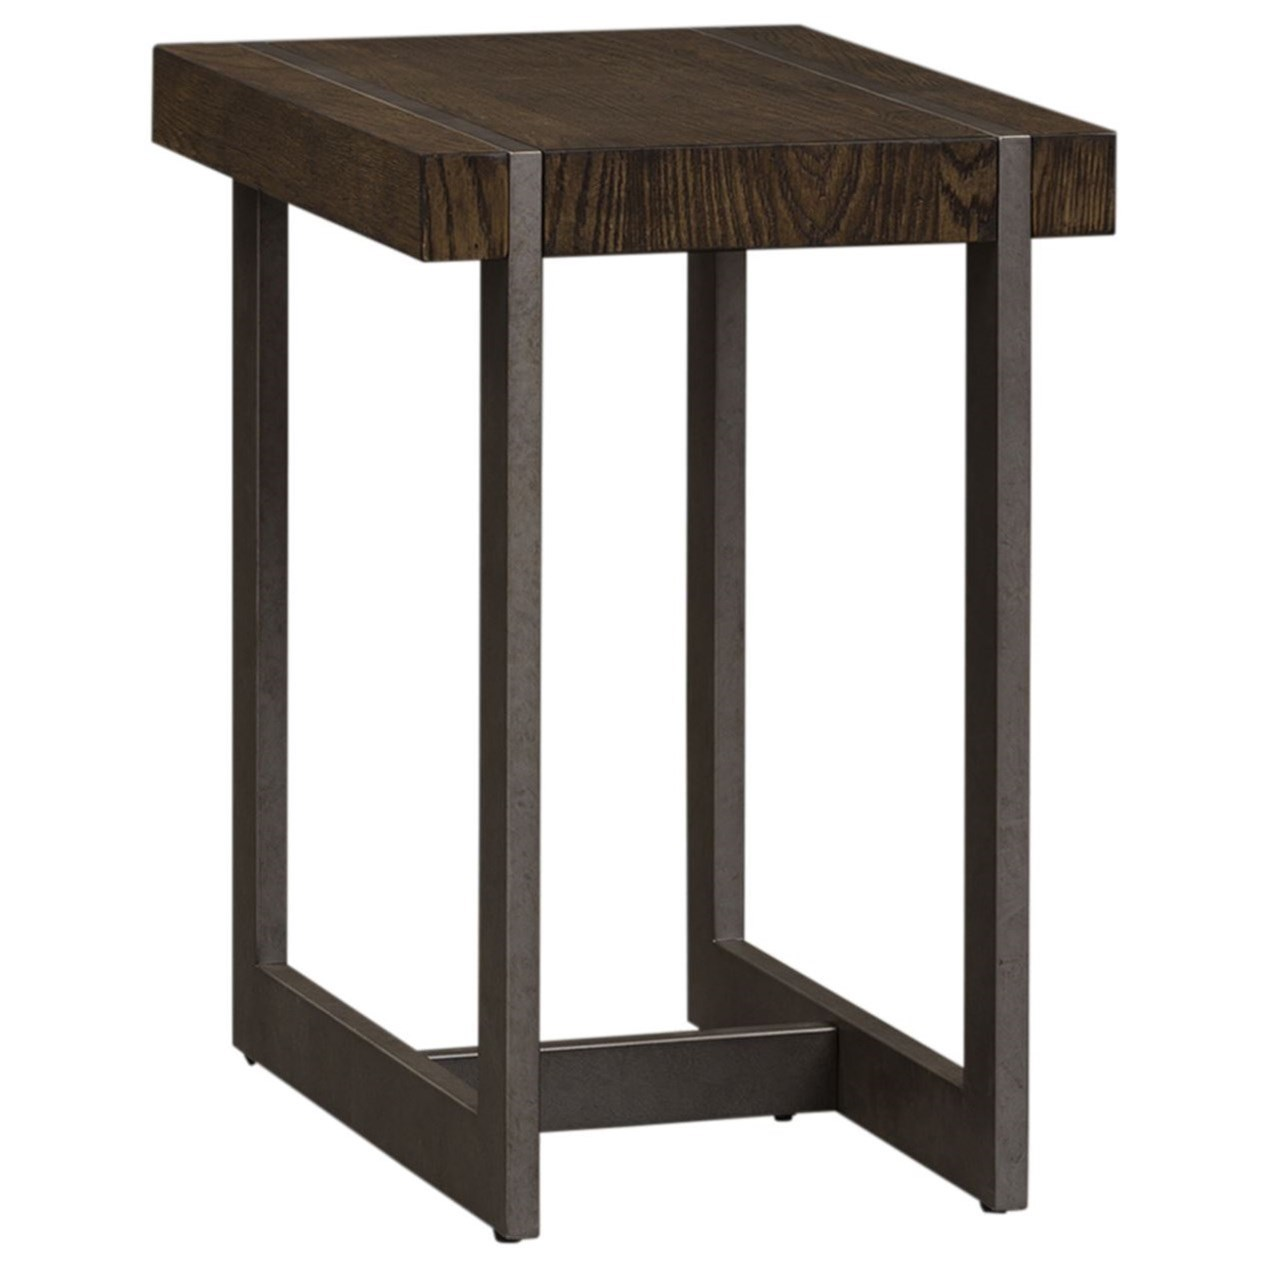 Seldon Chair Side Table by Libby at Walker's Furniture